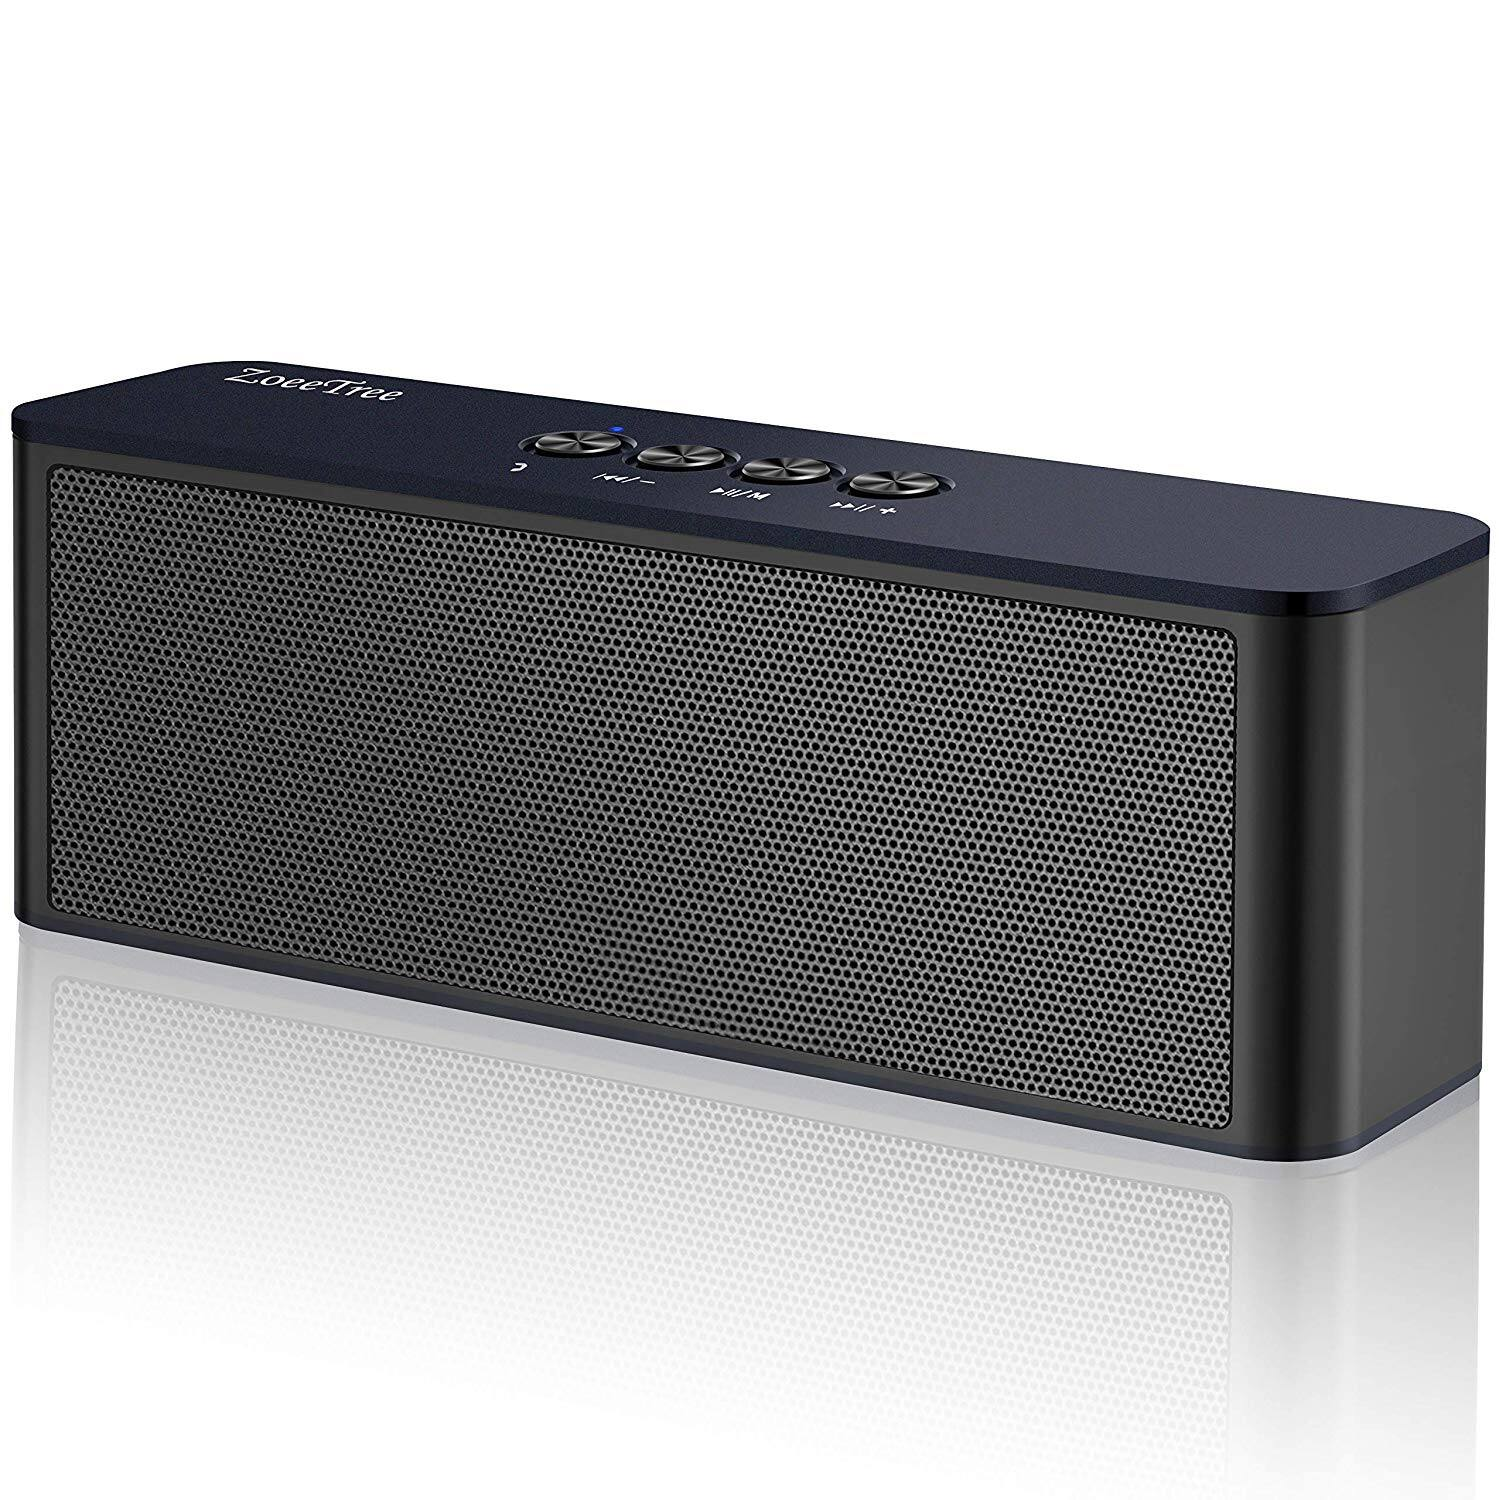 Bluetooth Speakers Portable Durable Wireless Speakers 20W, Bluetooth 4.2 Built-in Mic, TF Card Slot $10.38